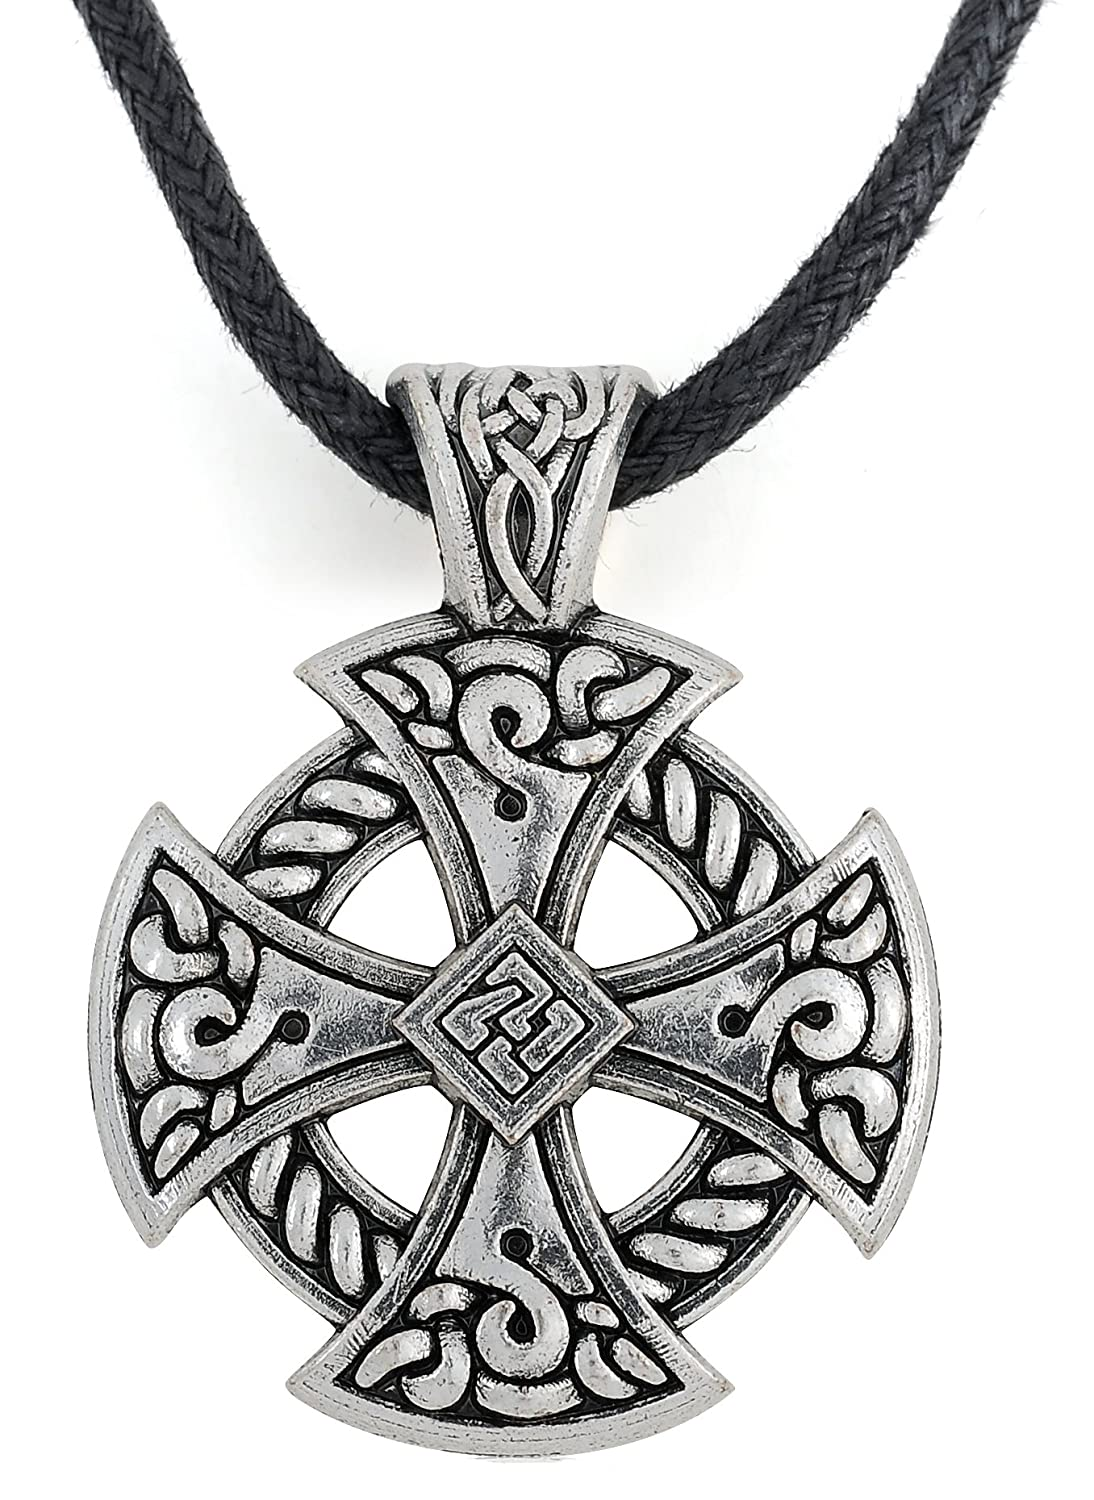 Ancient Celtic Cross Knotwork Hammer Pendant Irish Necklace Jewelry for Mens